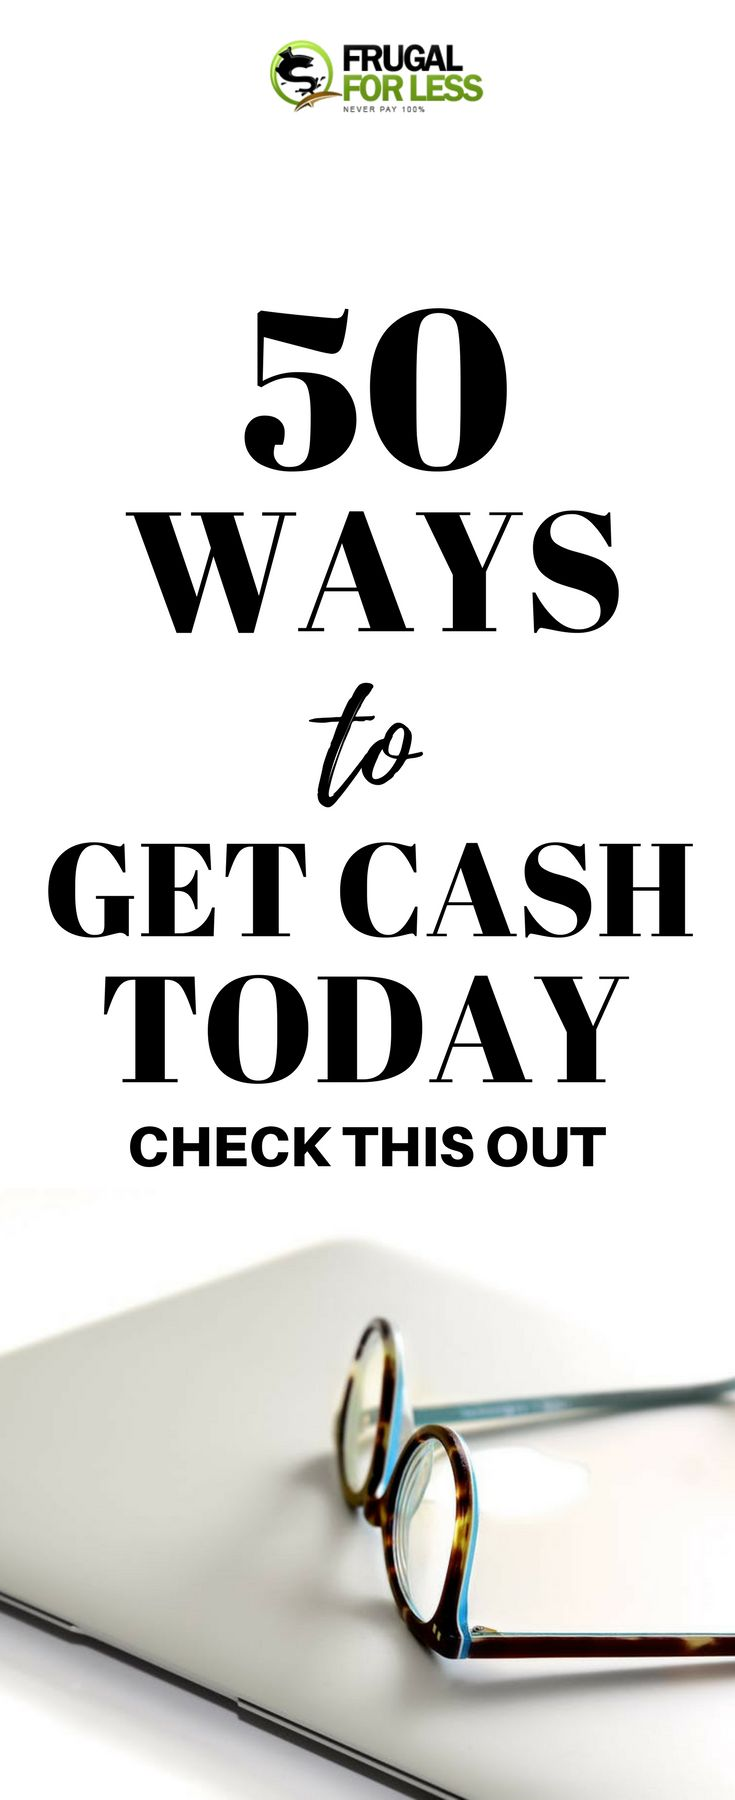 Check out these 50 ways to get cash today. Don't miss it! FrugalForLess.com